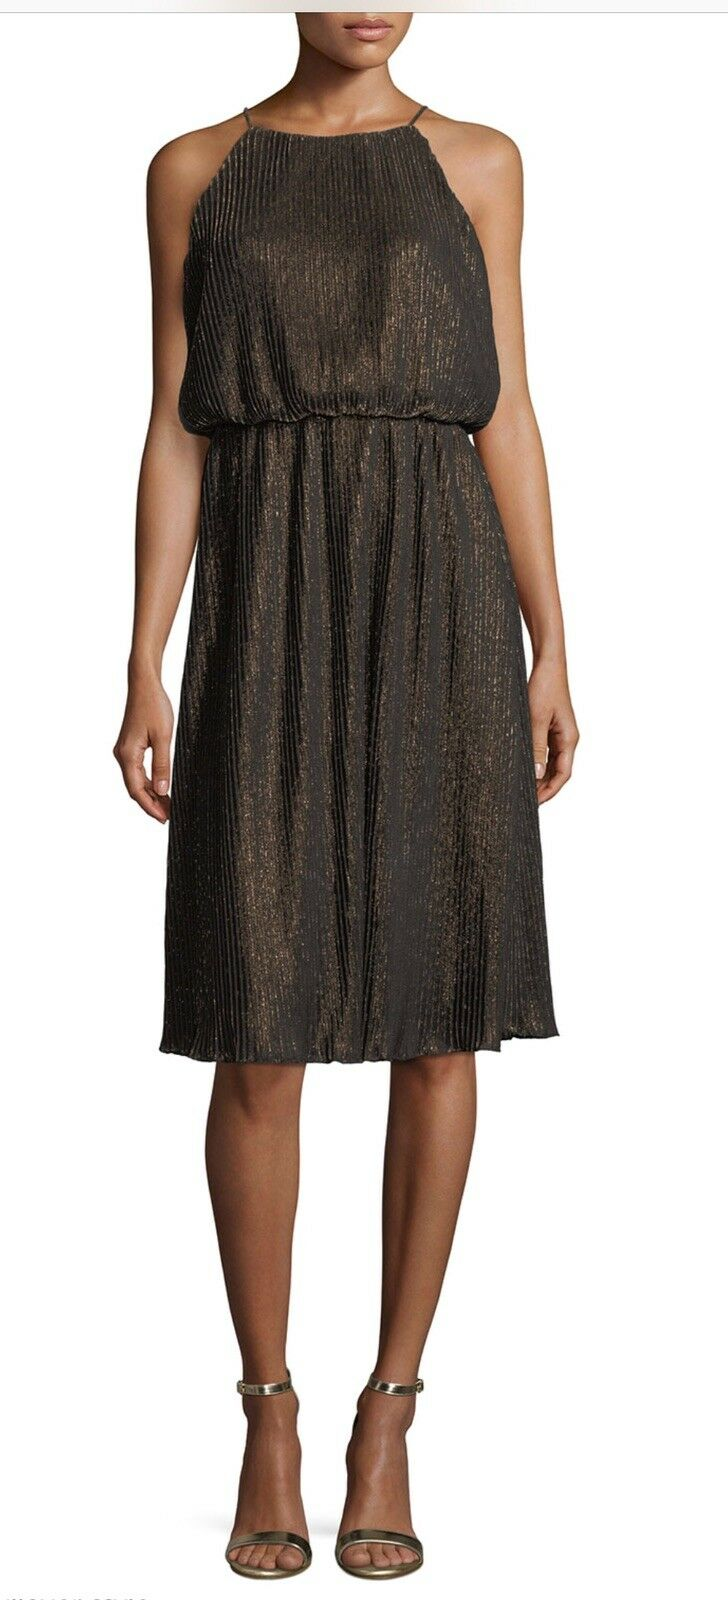 New Free People Julia Jordan Brown Metallic Pleated Dress, Size 12